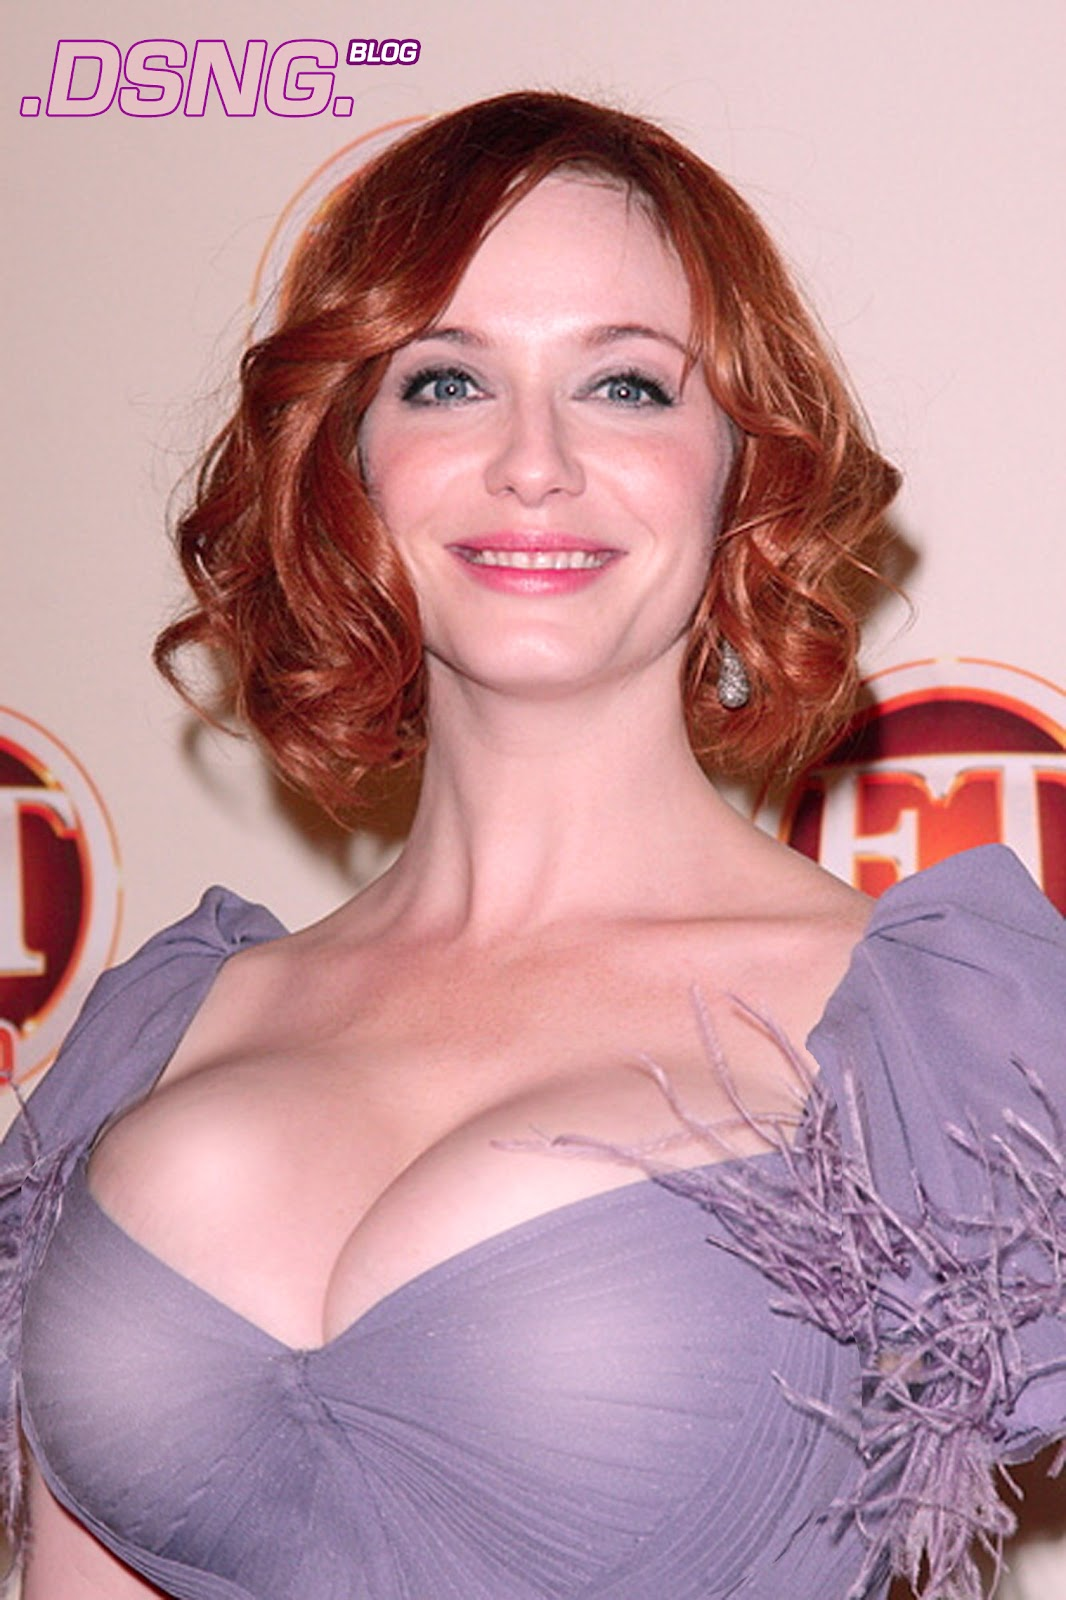 http://2.bp.blogspot.com/-J3C8ZktBDyo/T6NjZ-FUWyI/AAAAAAAAFUs/c3PXRWru_TI/s1600/christina+hendricks+hollywood+actress+big+huge+tits+breasts+boobs+jugs+pawg+whooty+redhead+red+head+sexy+star+trek+melons+rack+mad+men.jpg